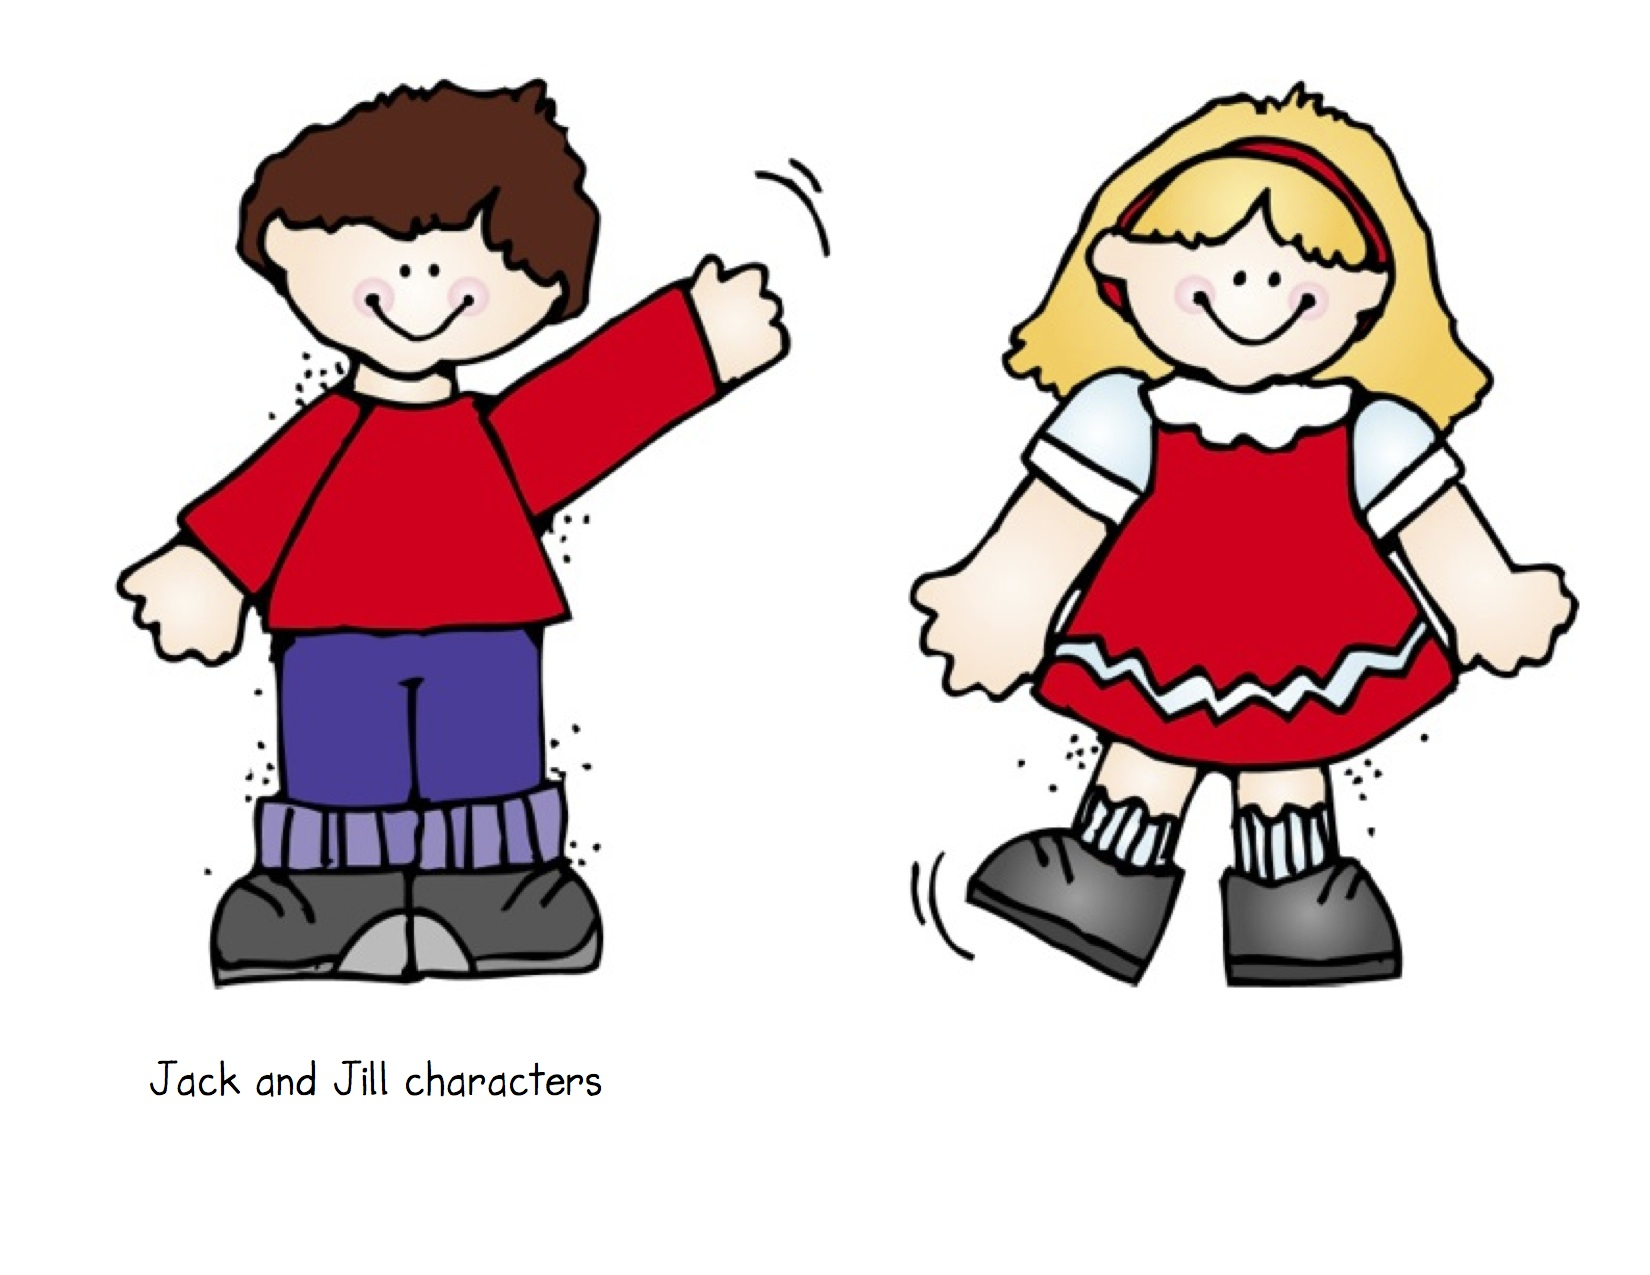 jack and jill went up the hill clipart wwwimgkidcom